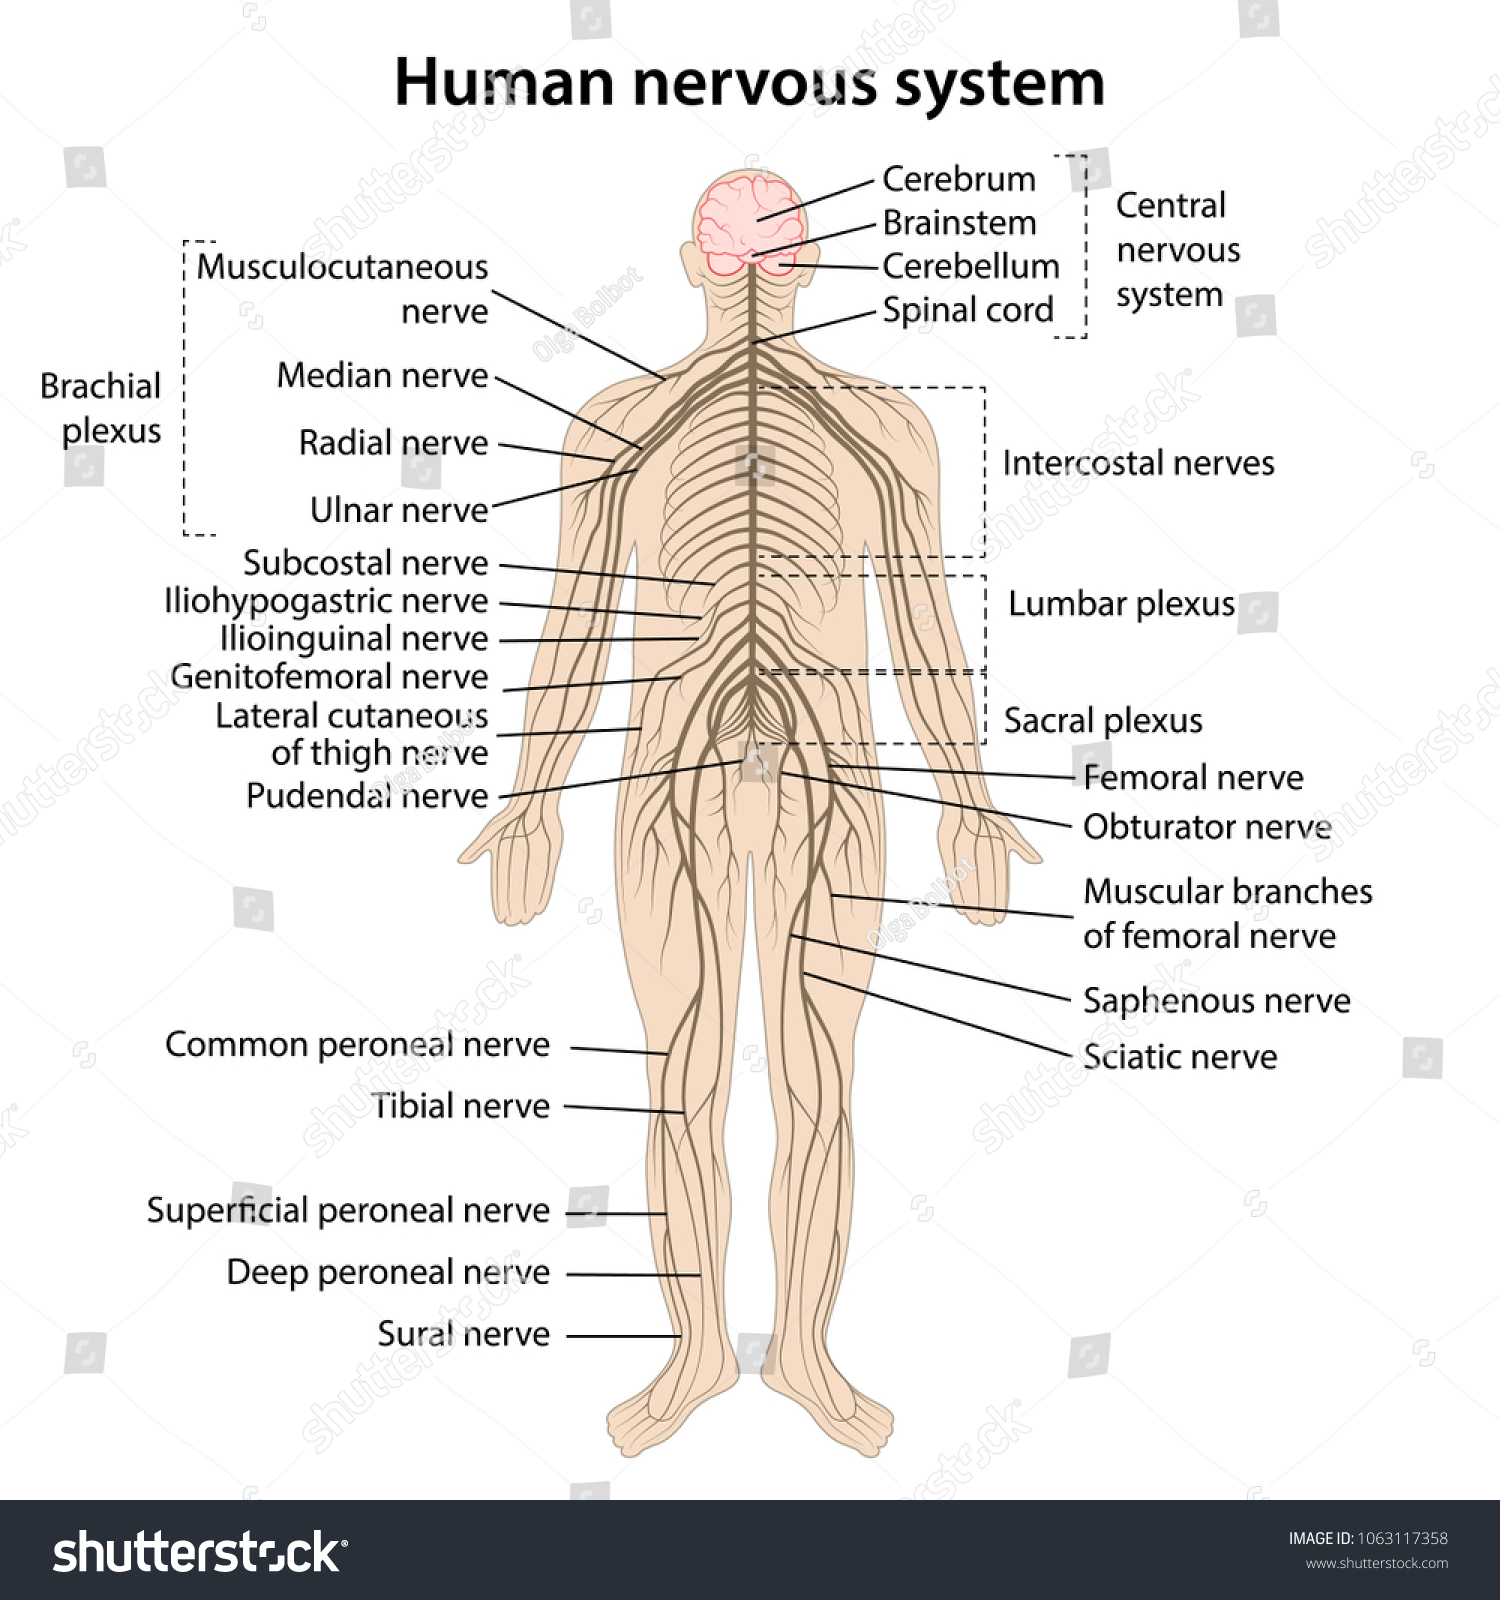 human nervous system main parts labeled stock vector (royalty free